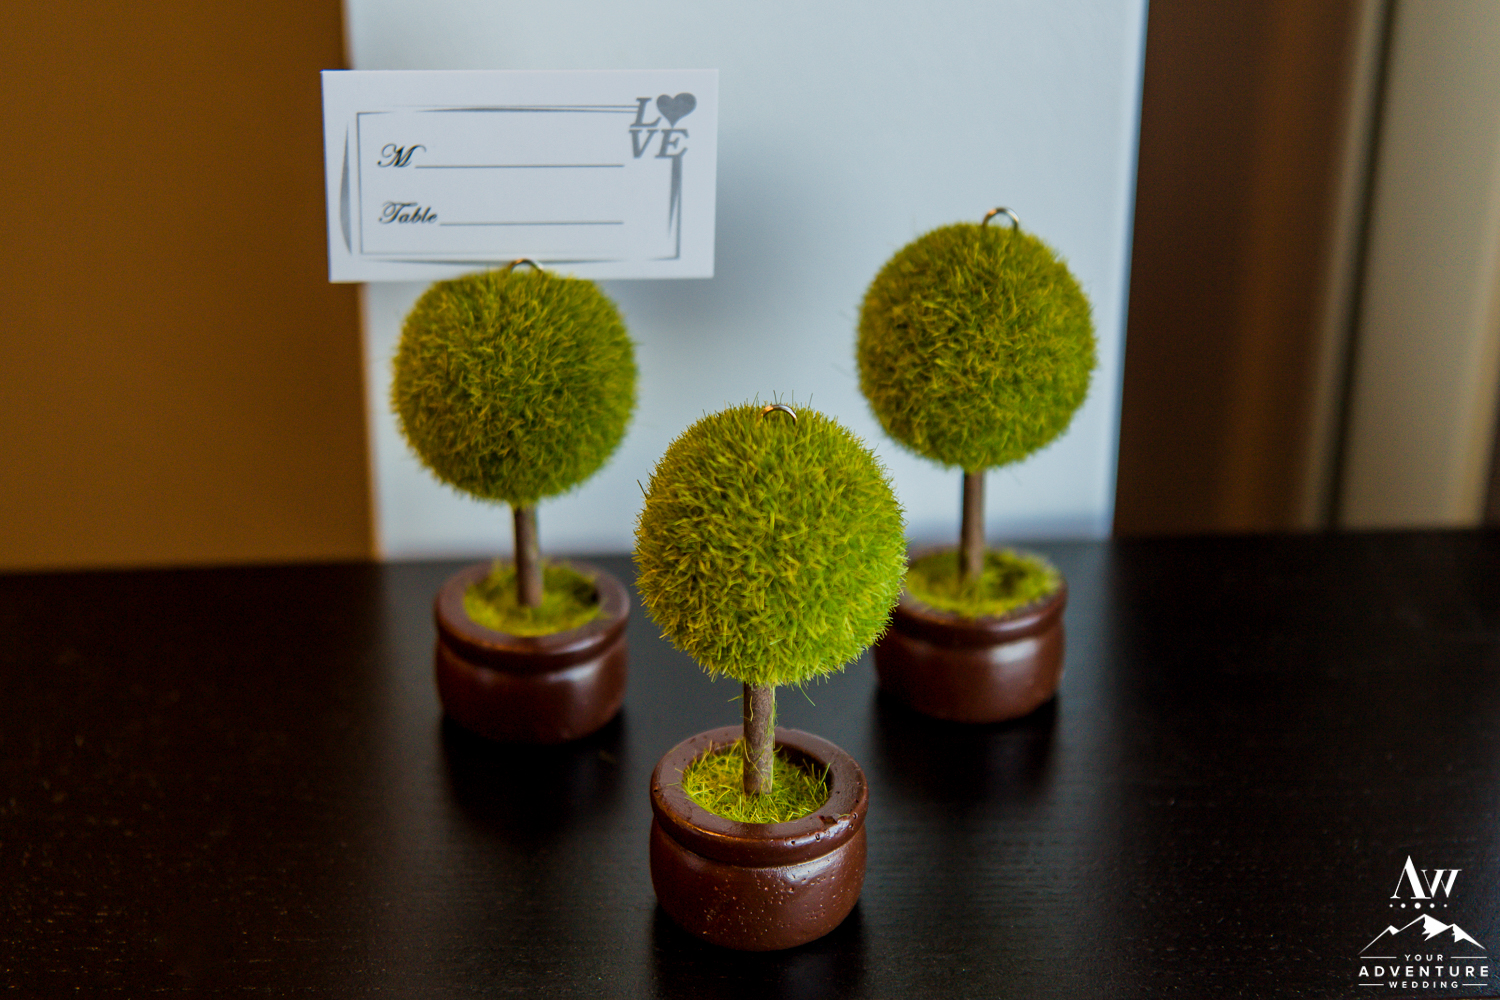 iceland-wedding-rental-moss-ball-place-card-holders